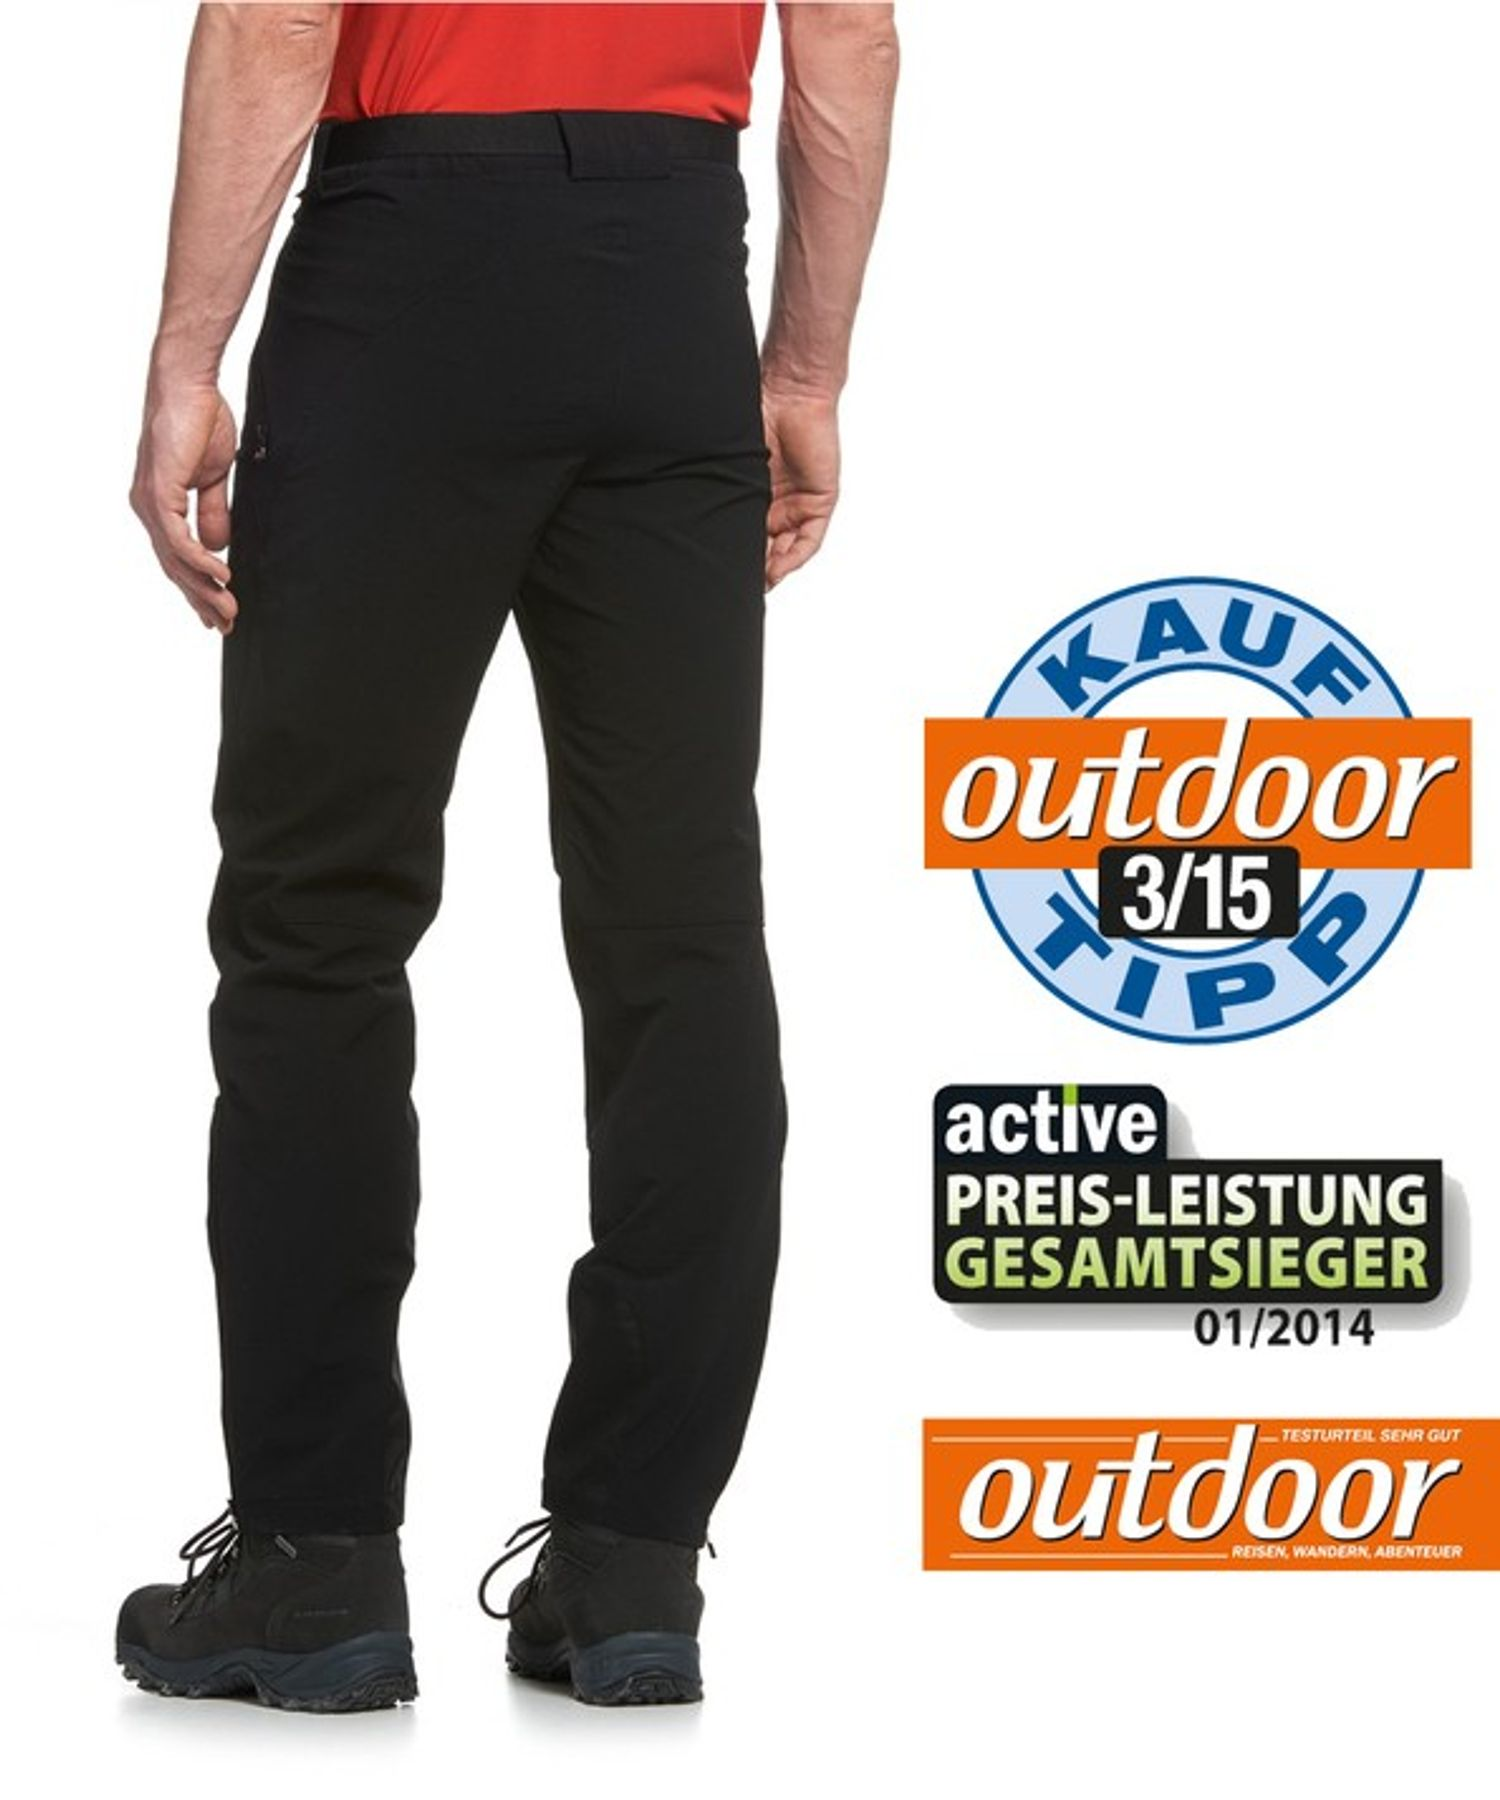 Maier Sports- Herren Outdoor- Touren - und Wanderhose in Black Artikel Naturno (136003) – Bild 2